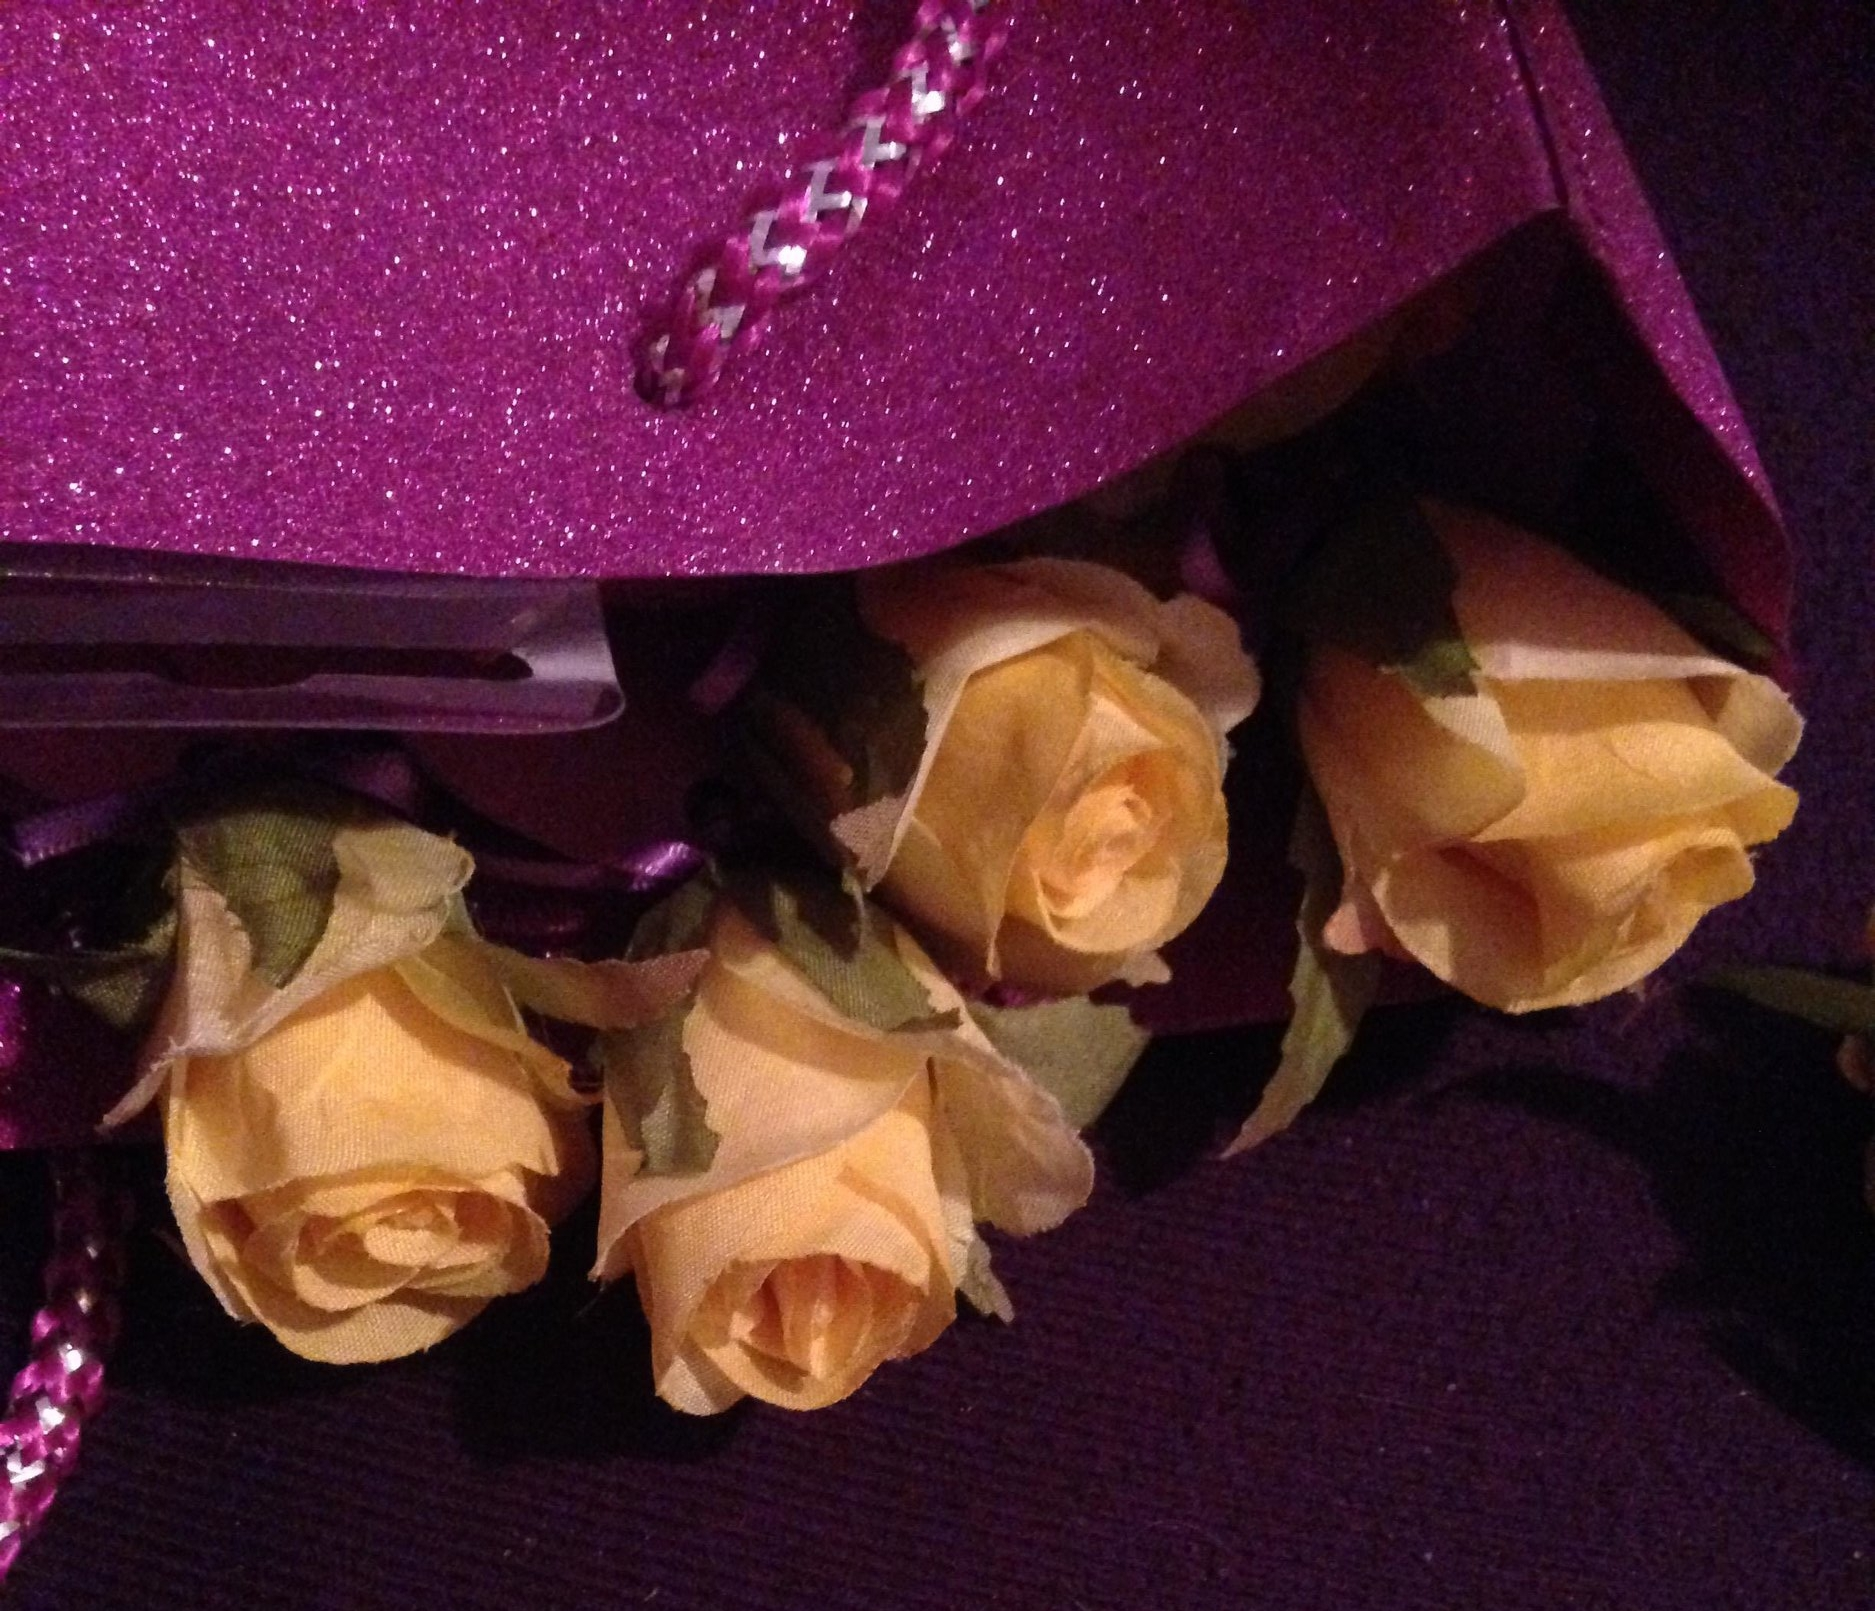 A sneak peek at my glittery bag of friendship love roses getting ready to go!! :D x